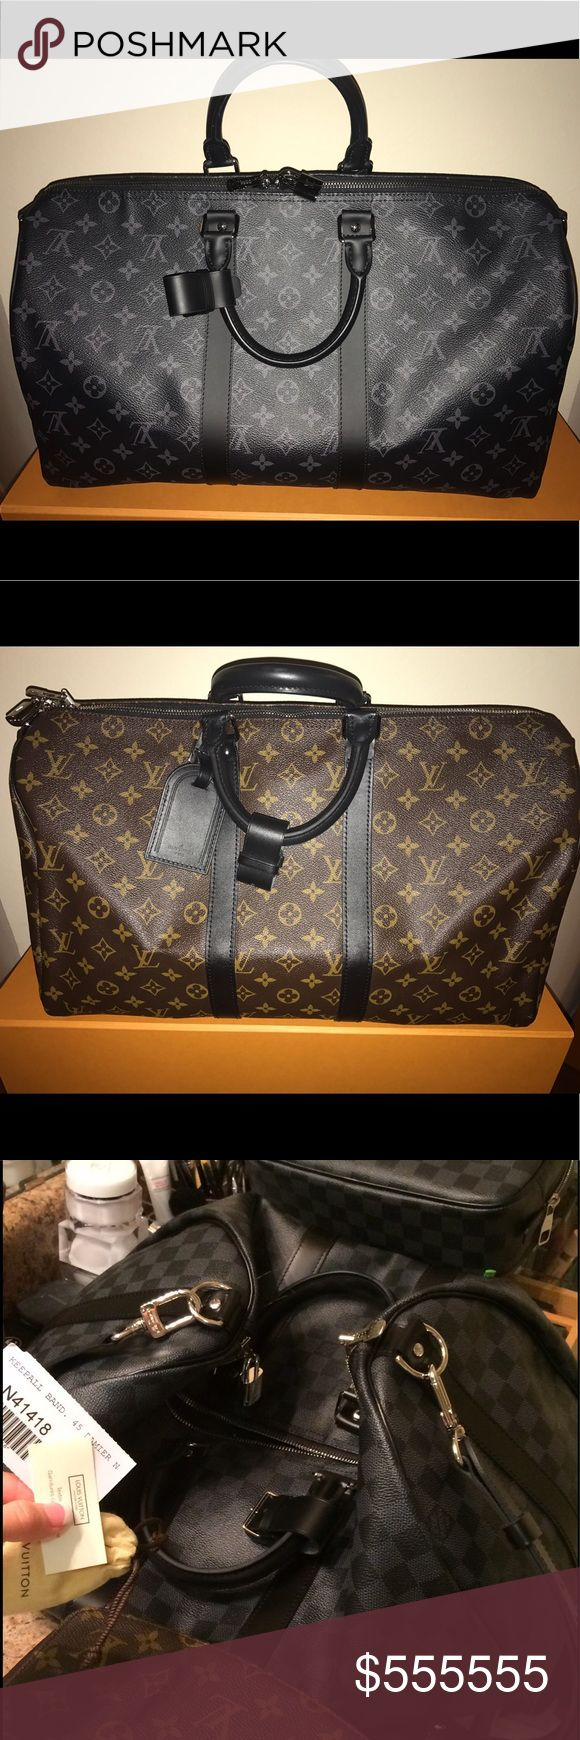 Travel lv luggage sale Just a couple lv Tavel pieces. 1000% Authentic of course!! Mix & match bundle to save more feel free to make a REASONABLE OFFER. SERIOUS BUYERS Welcome. Happy to post lots more photos if your Very interested. Everything is listed on Tradsey to for better pics & more info. Check it out Louis Vuitton Bags Travel Bags